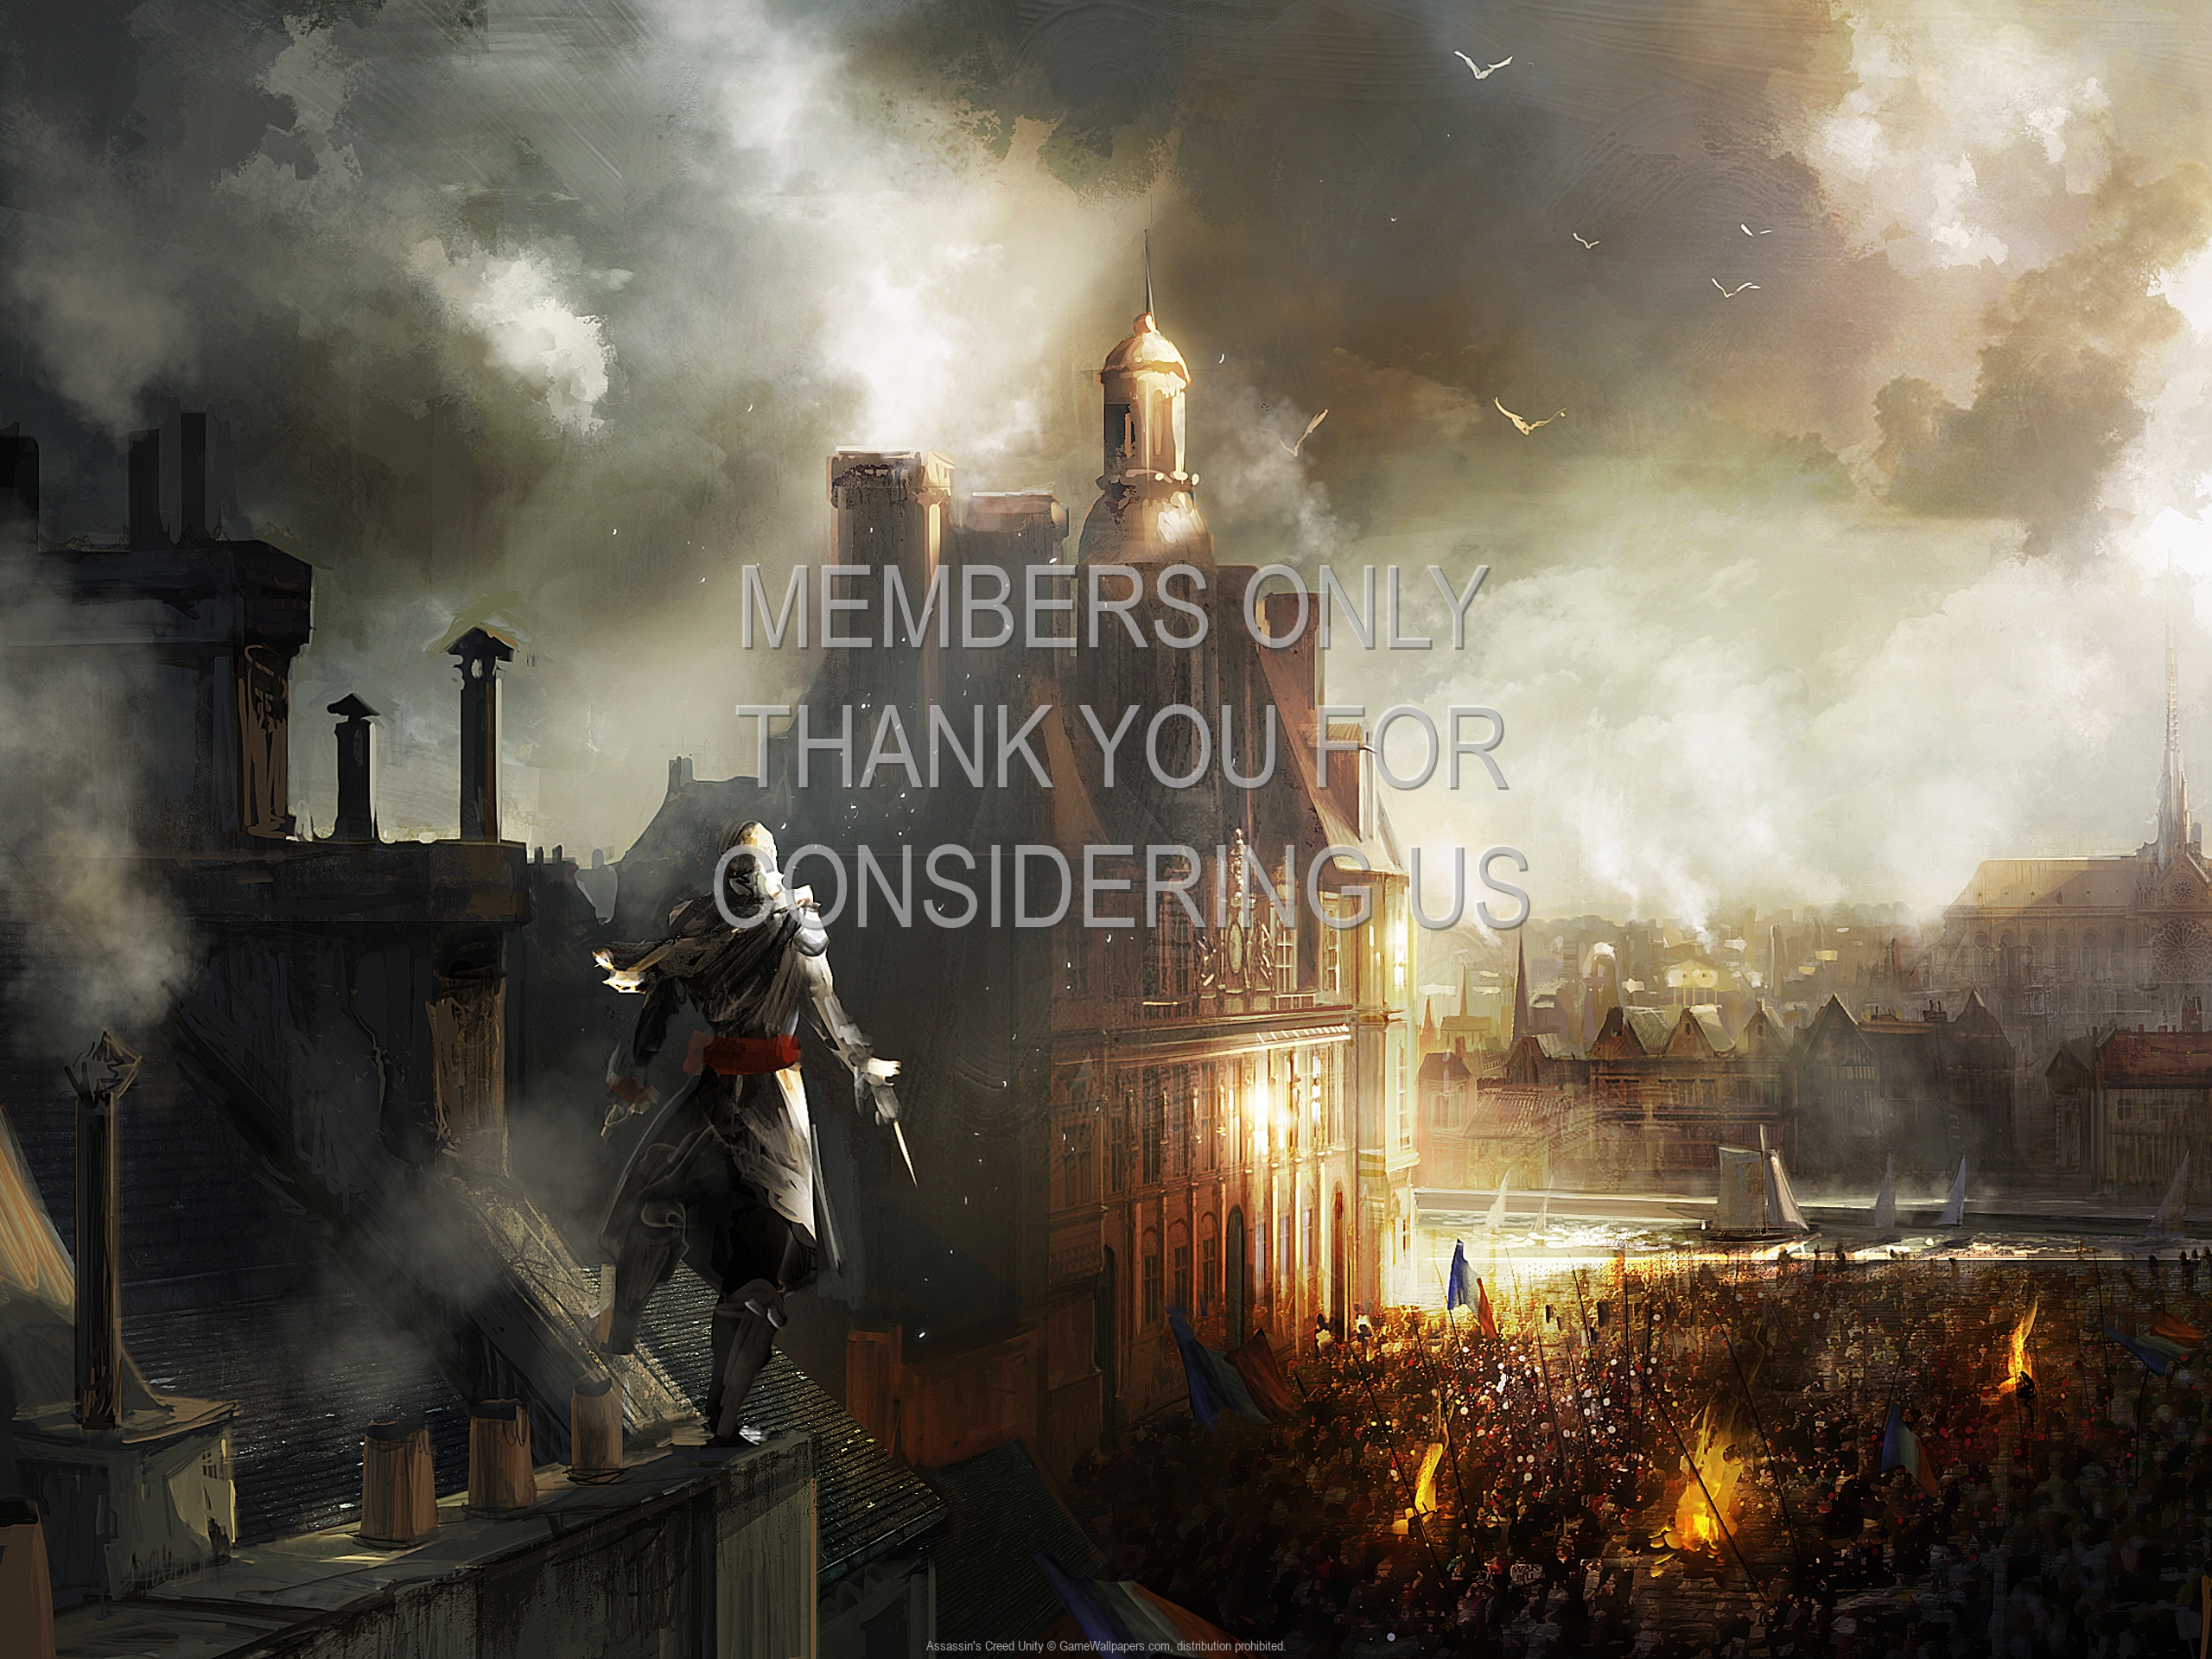 Assassins Creed Unity 1920x1080 Mobile Wallpaper Or Background 06